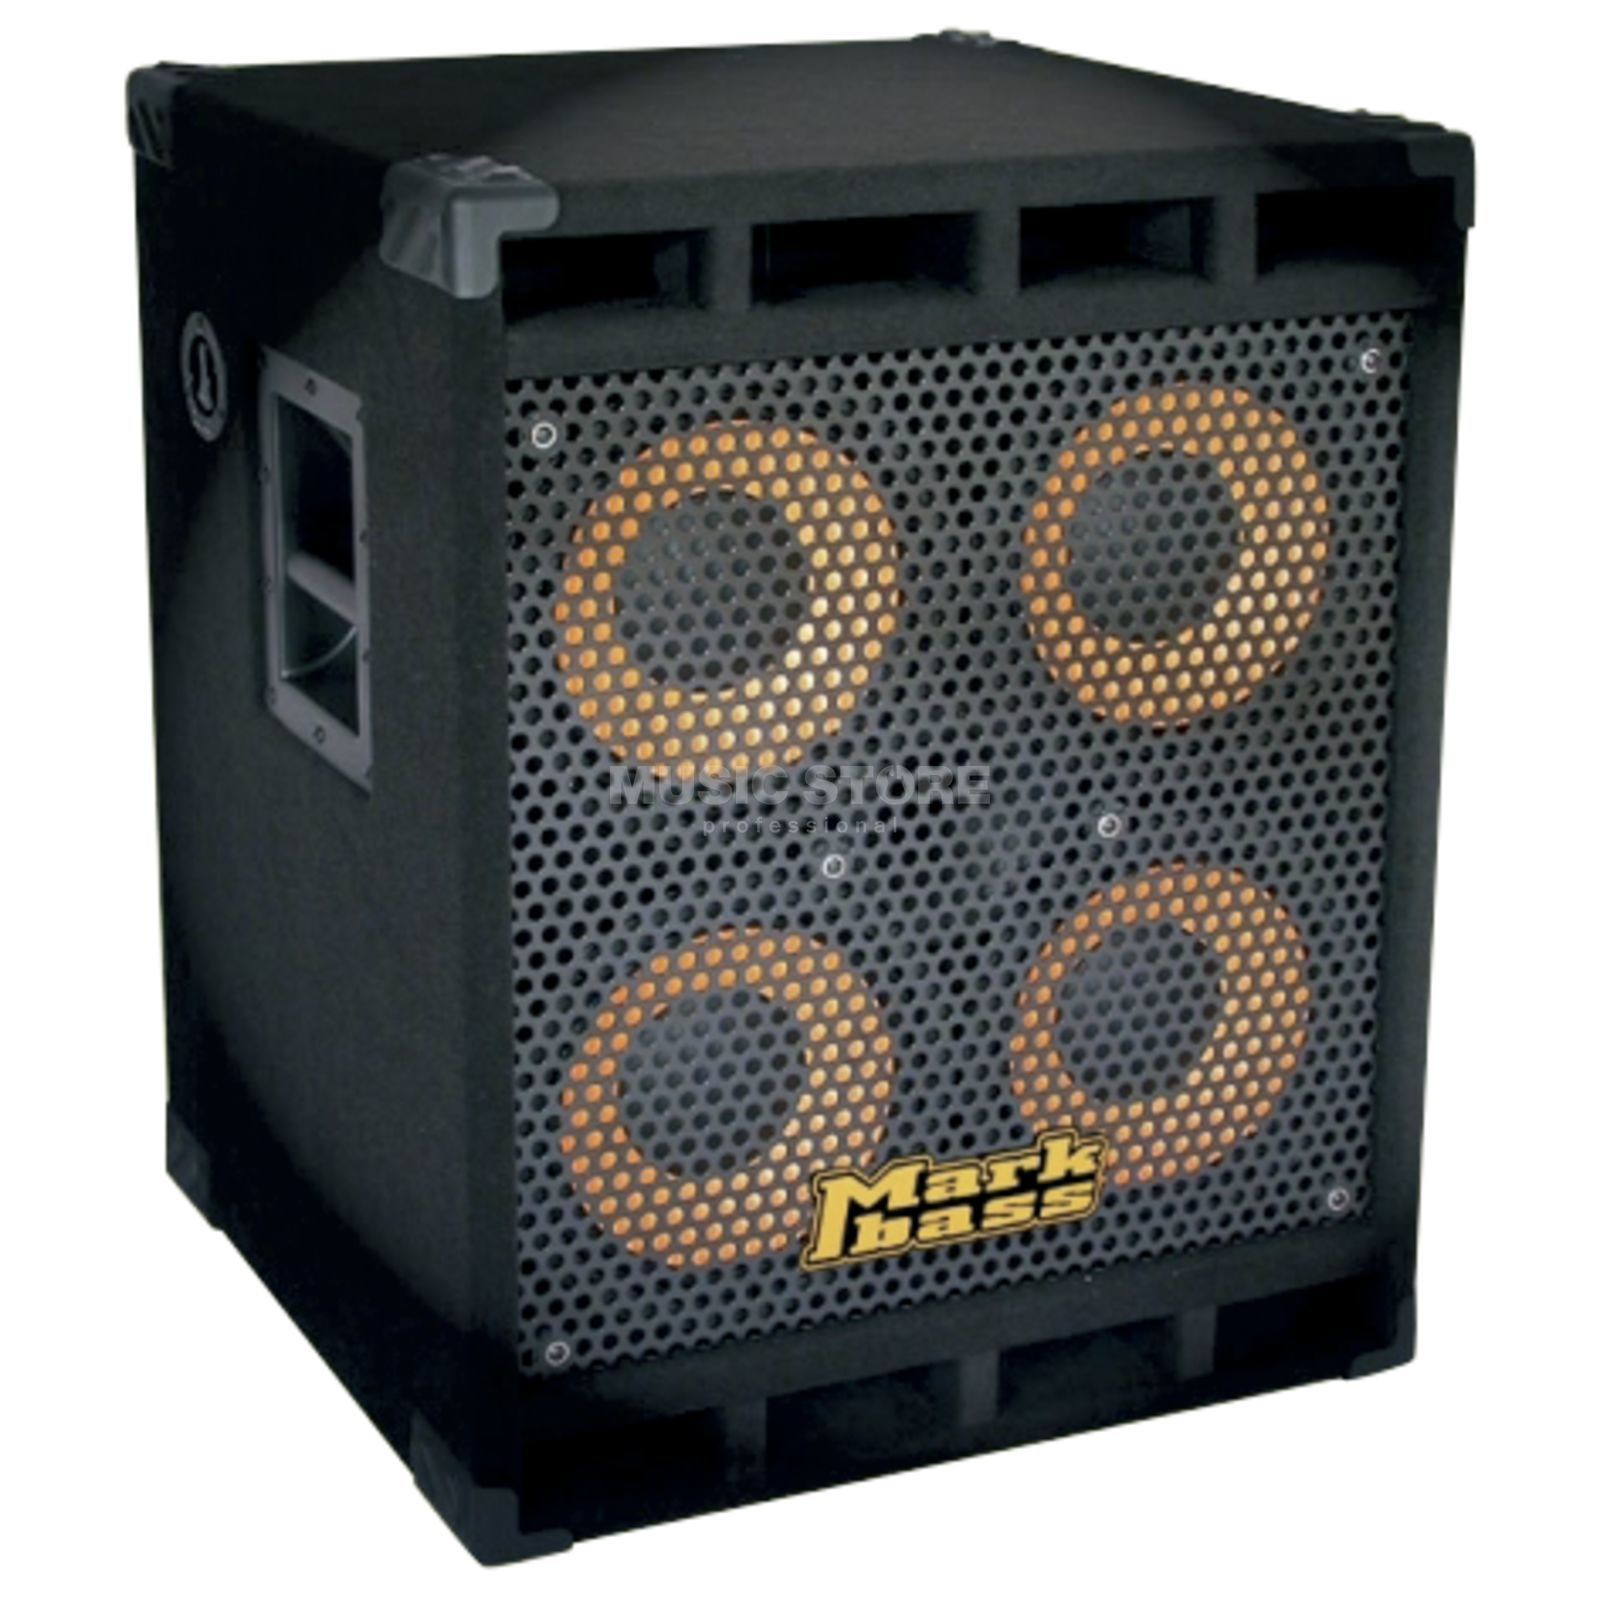 Markbass standaard 104 HF 8 Ohm Cabinet  Productafbeelding